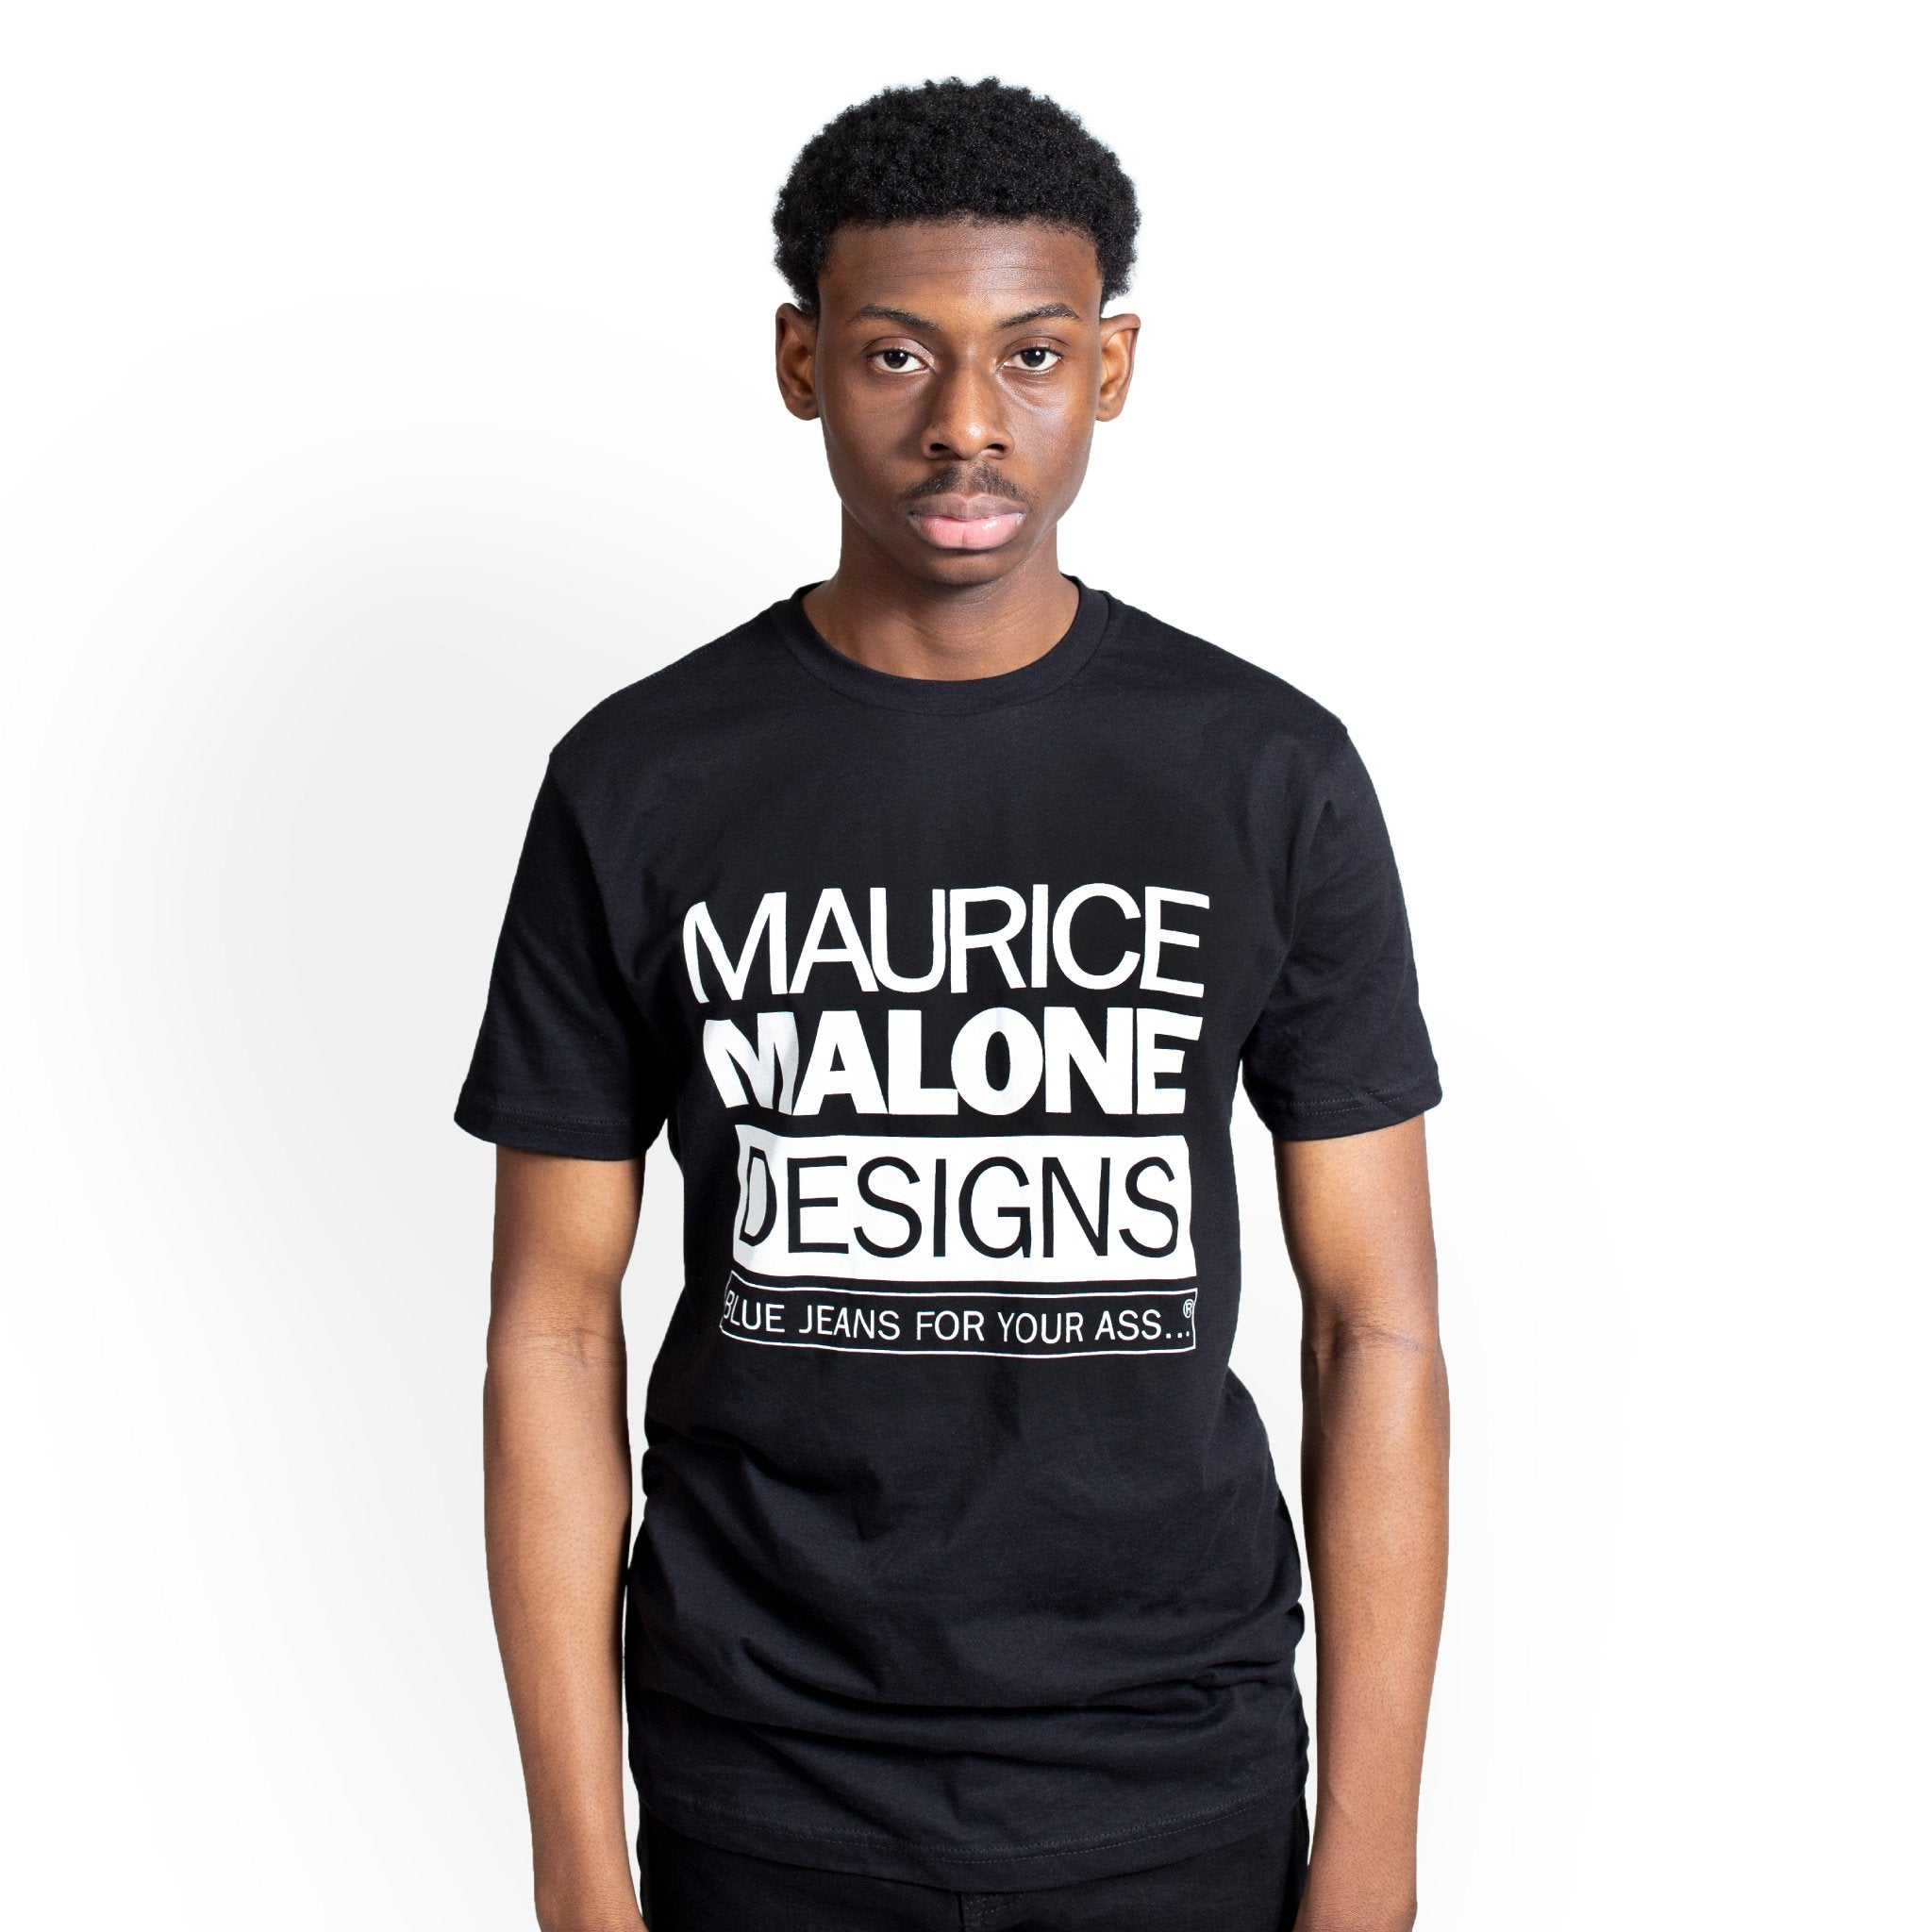 Blue Jeans For Your A... black logo t-shirt by Maurice Malone